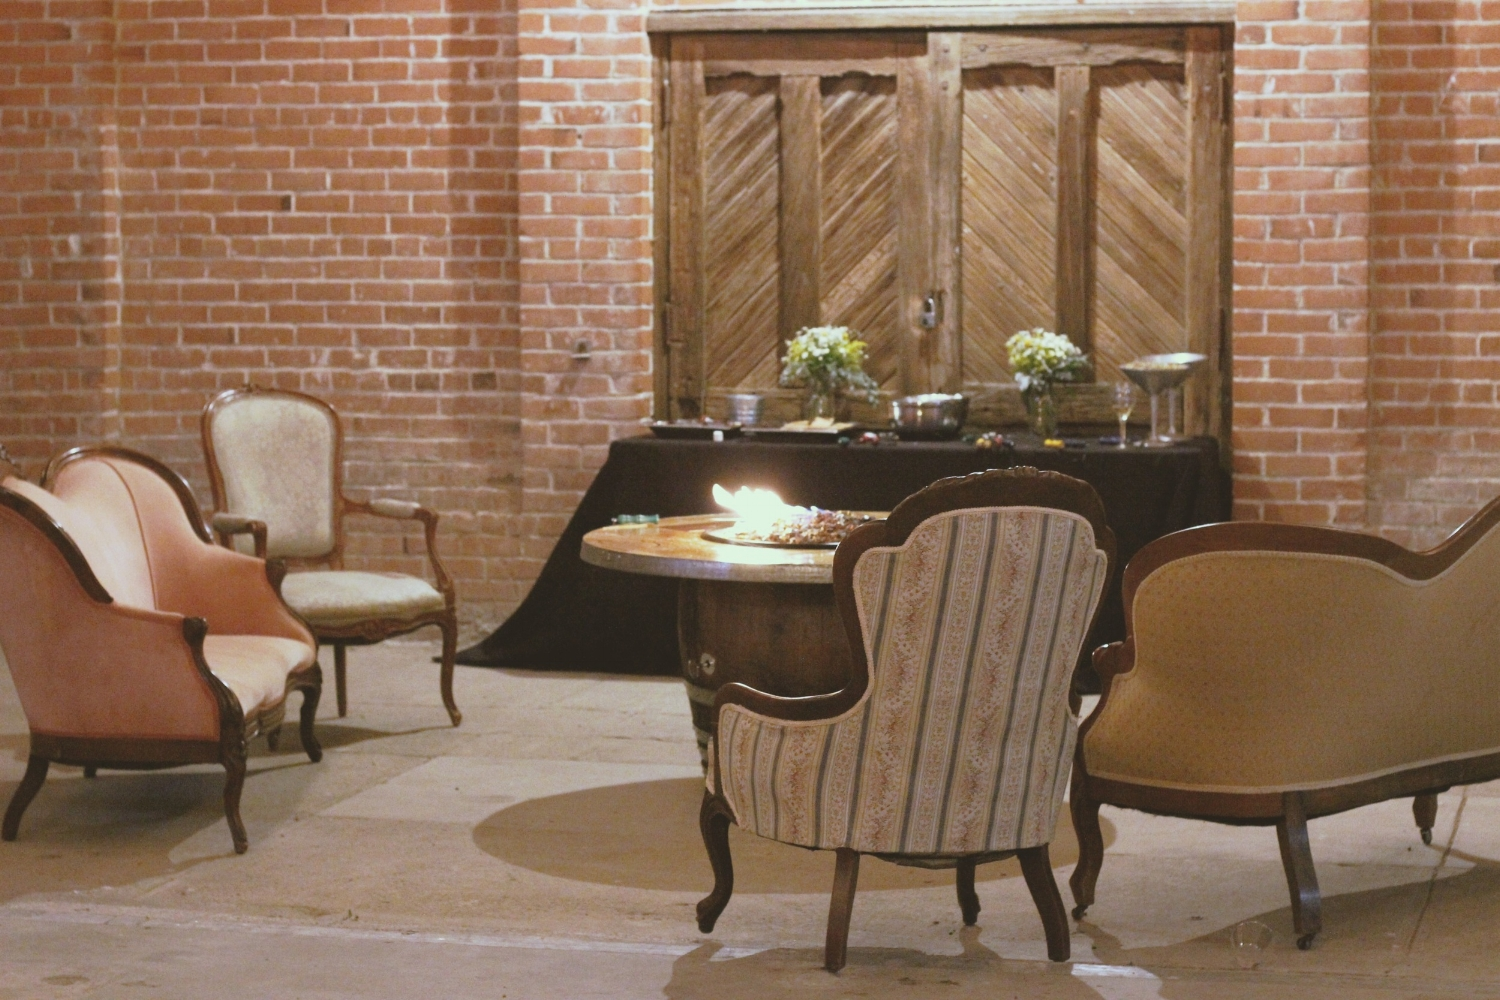 Old Sugar Mill Wedding - Vintage Lounge Area